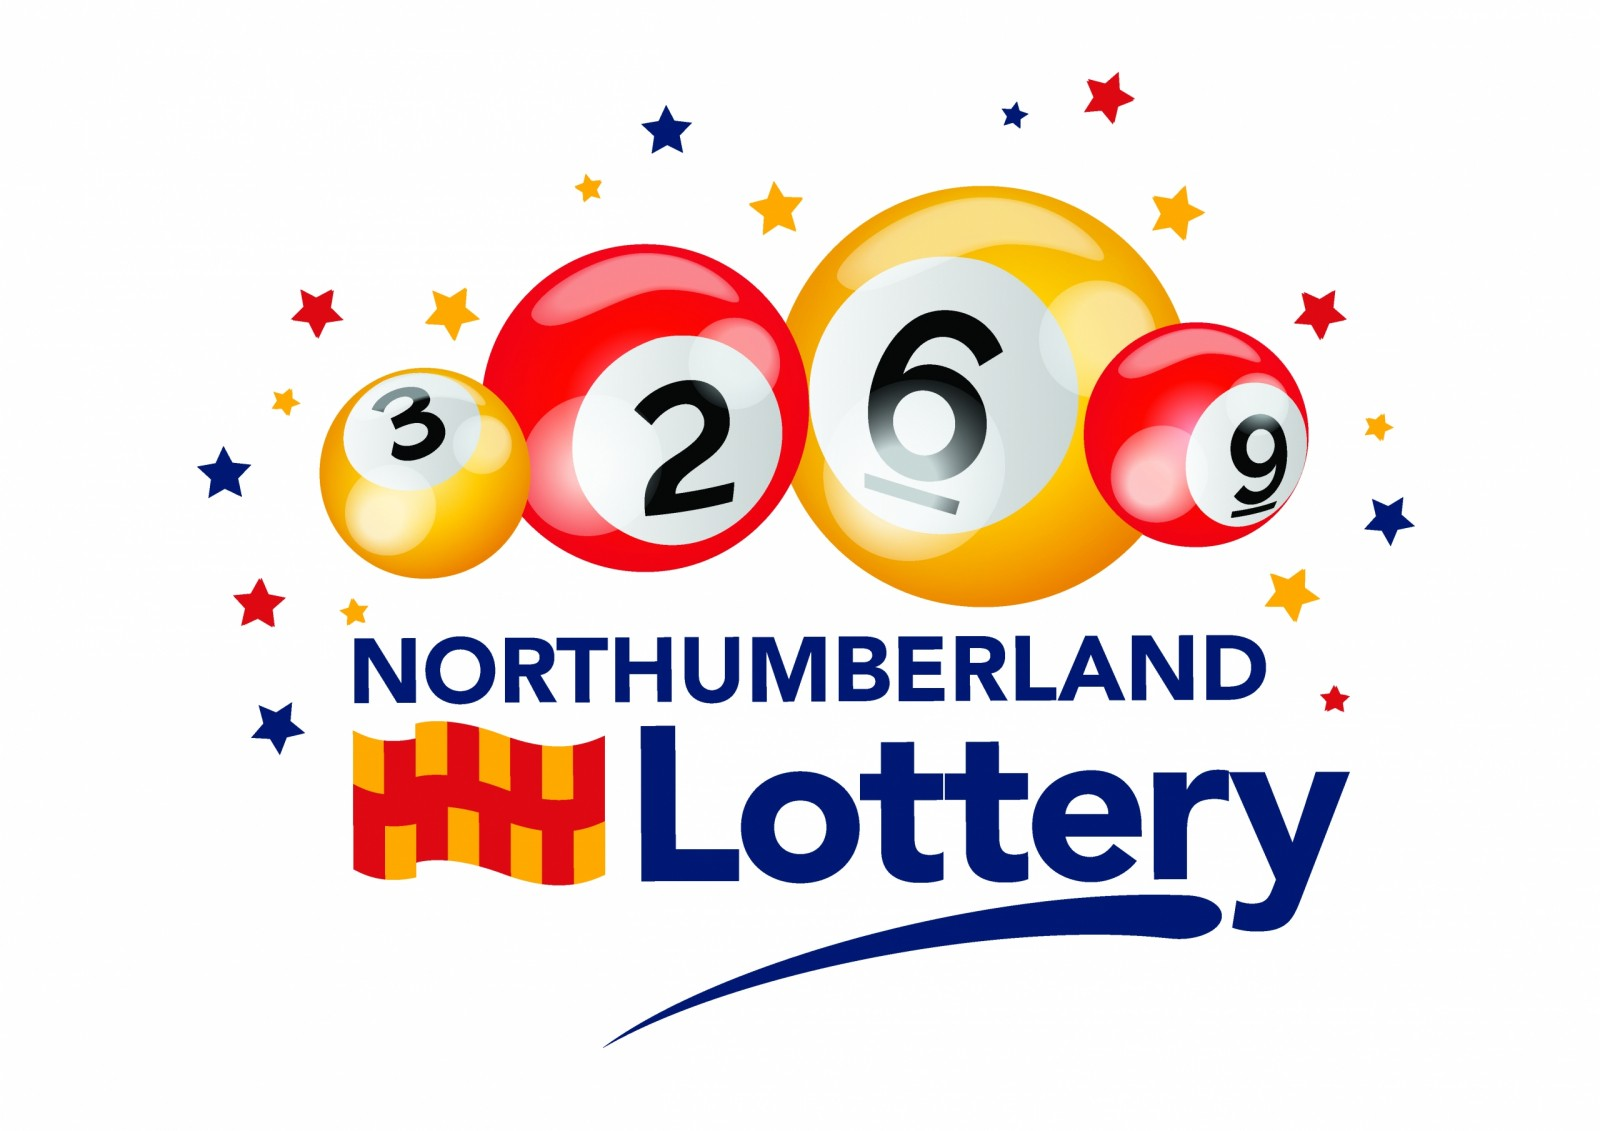 Northumberland Lottery kicks off today!